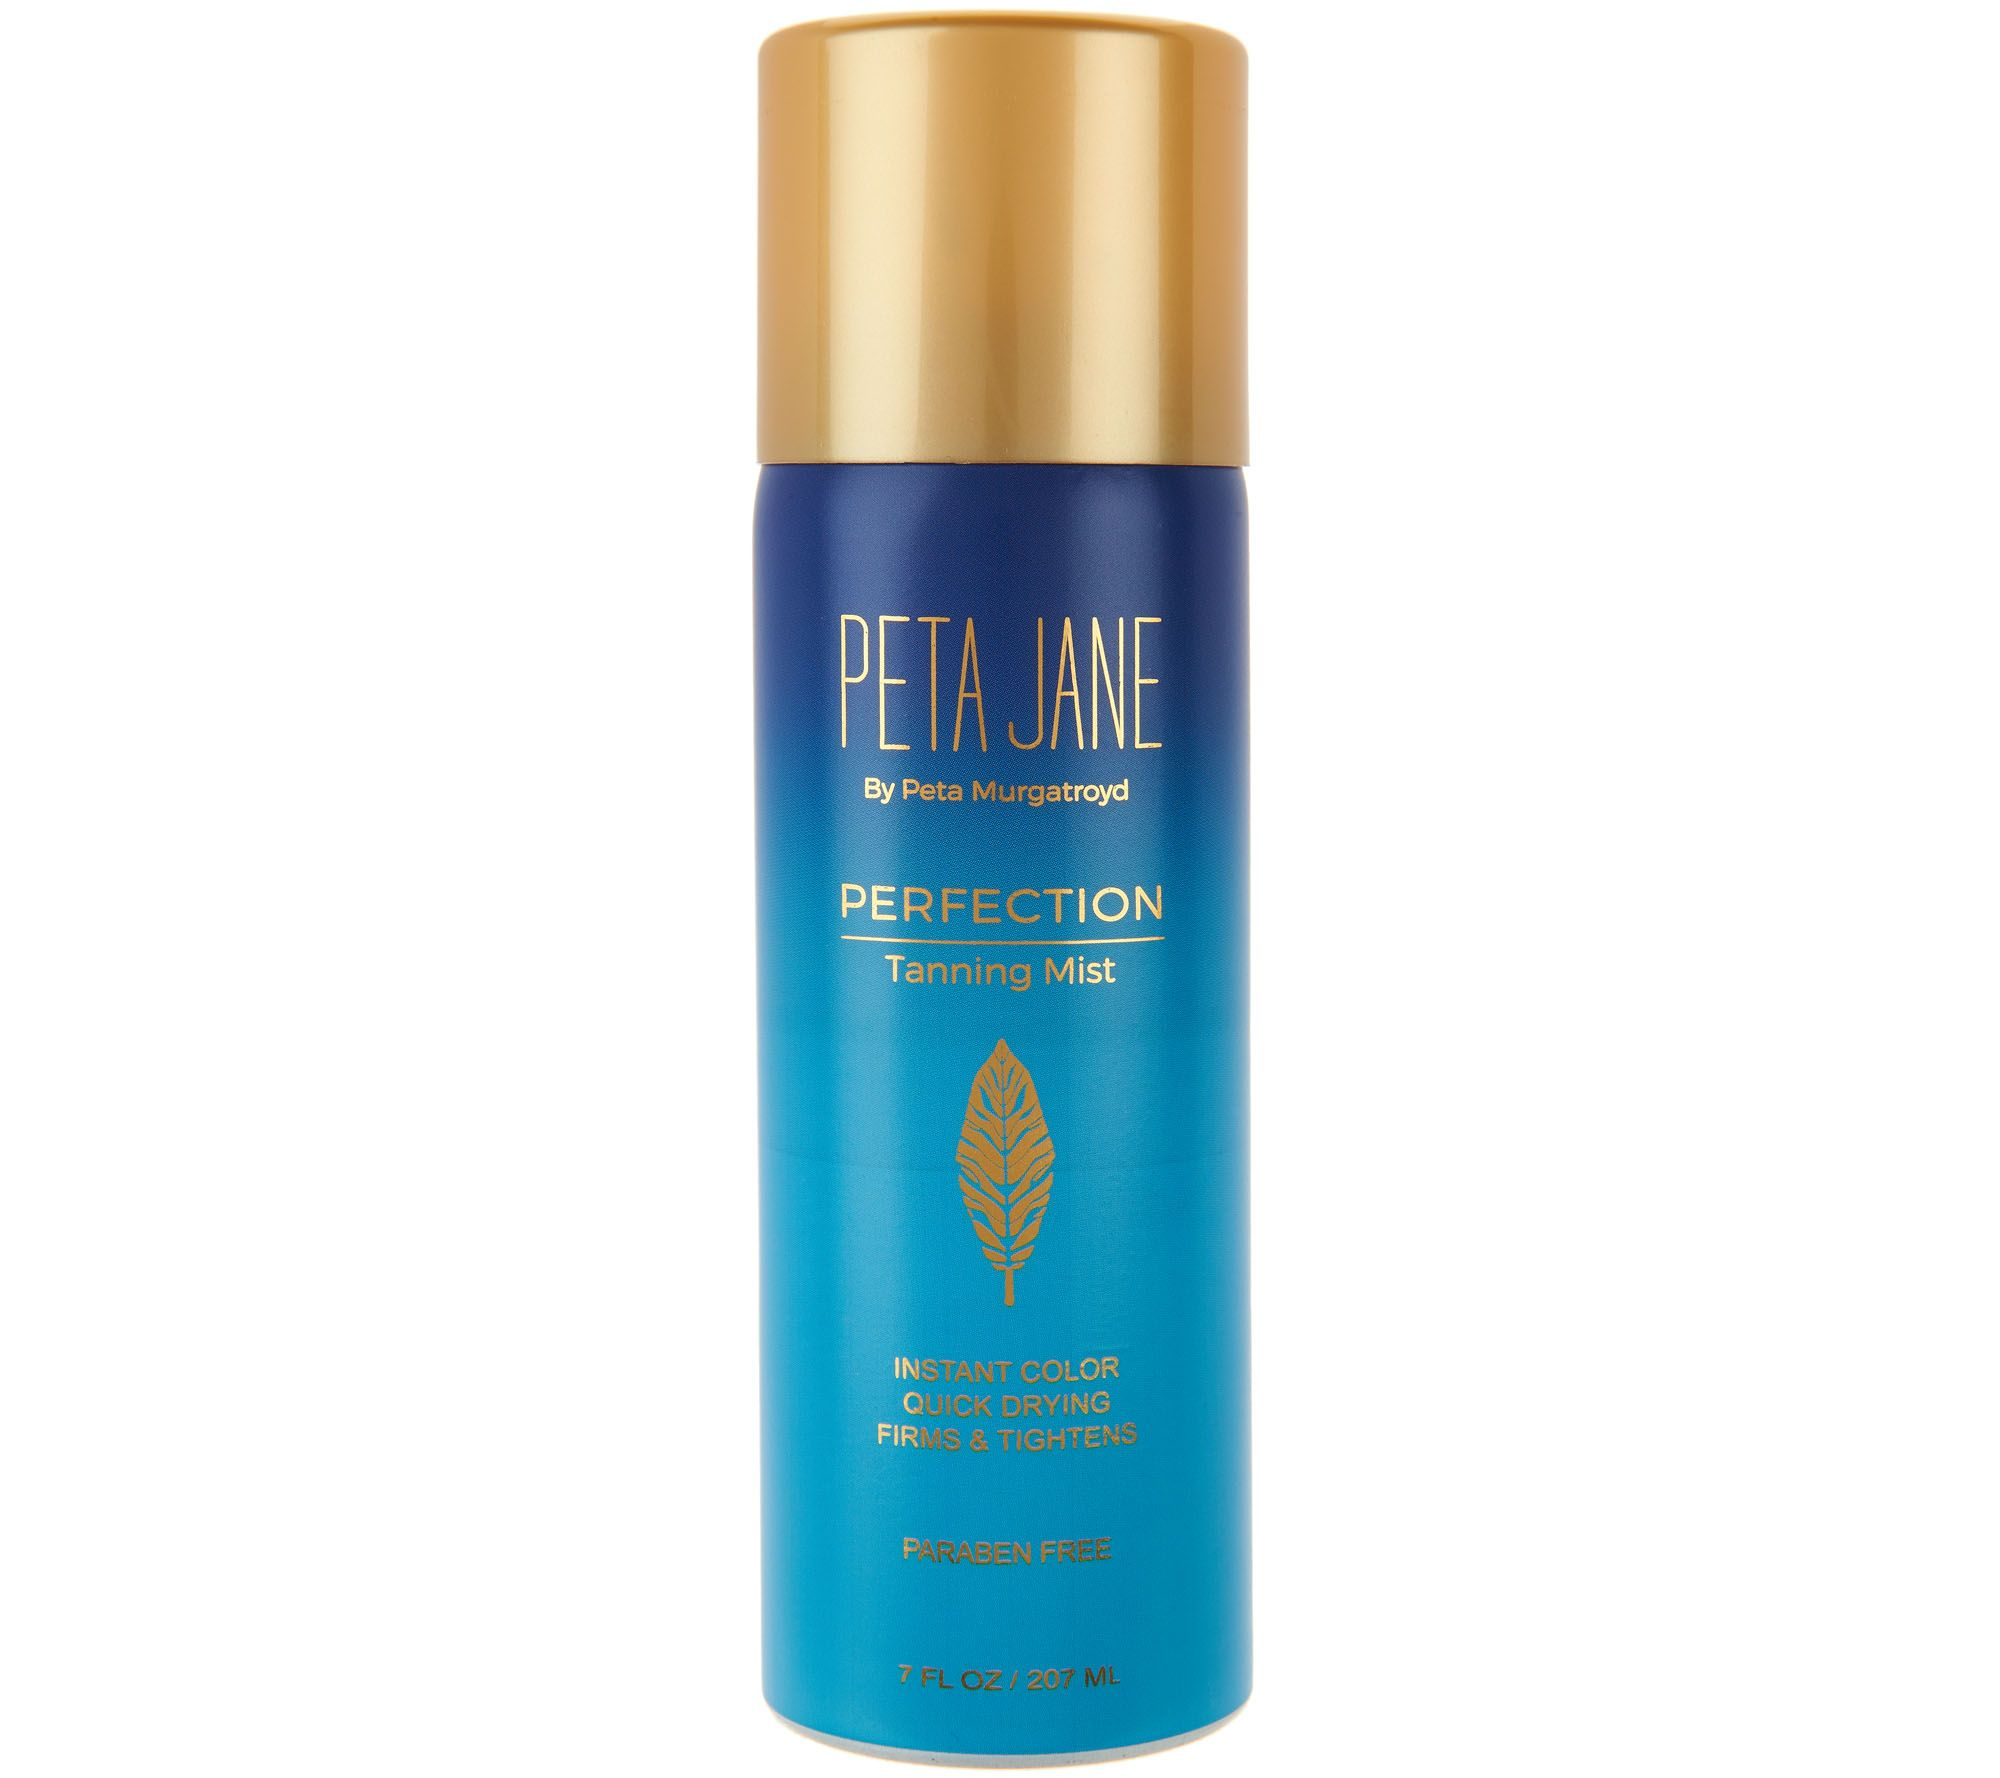 Peta Jane Perfection Tanning Mist by South Seas - Page 1 — QVC.com